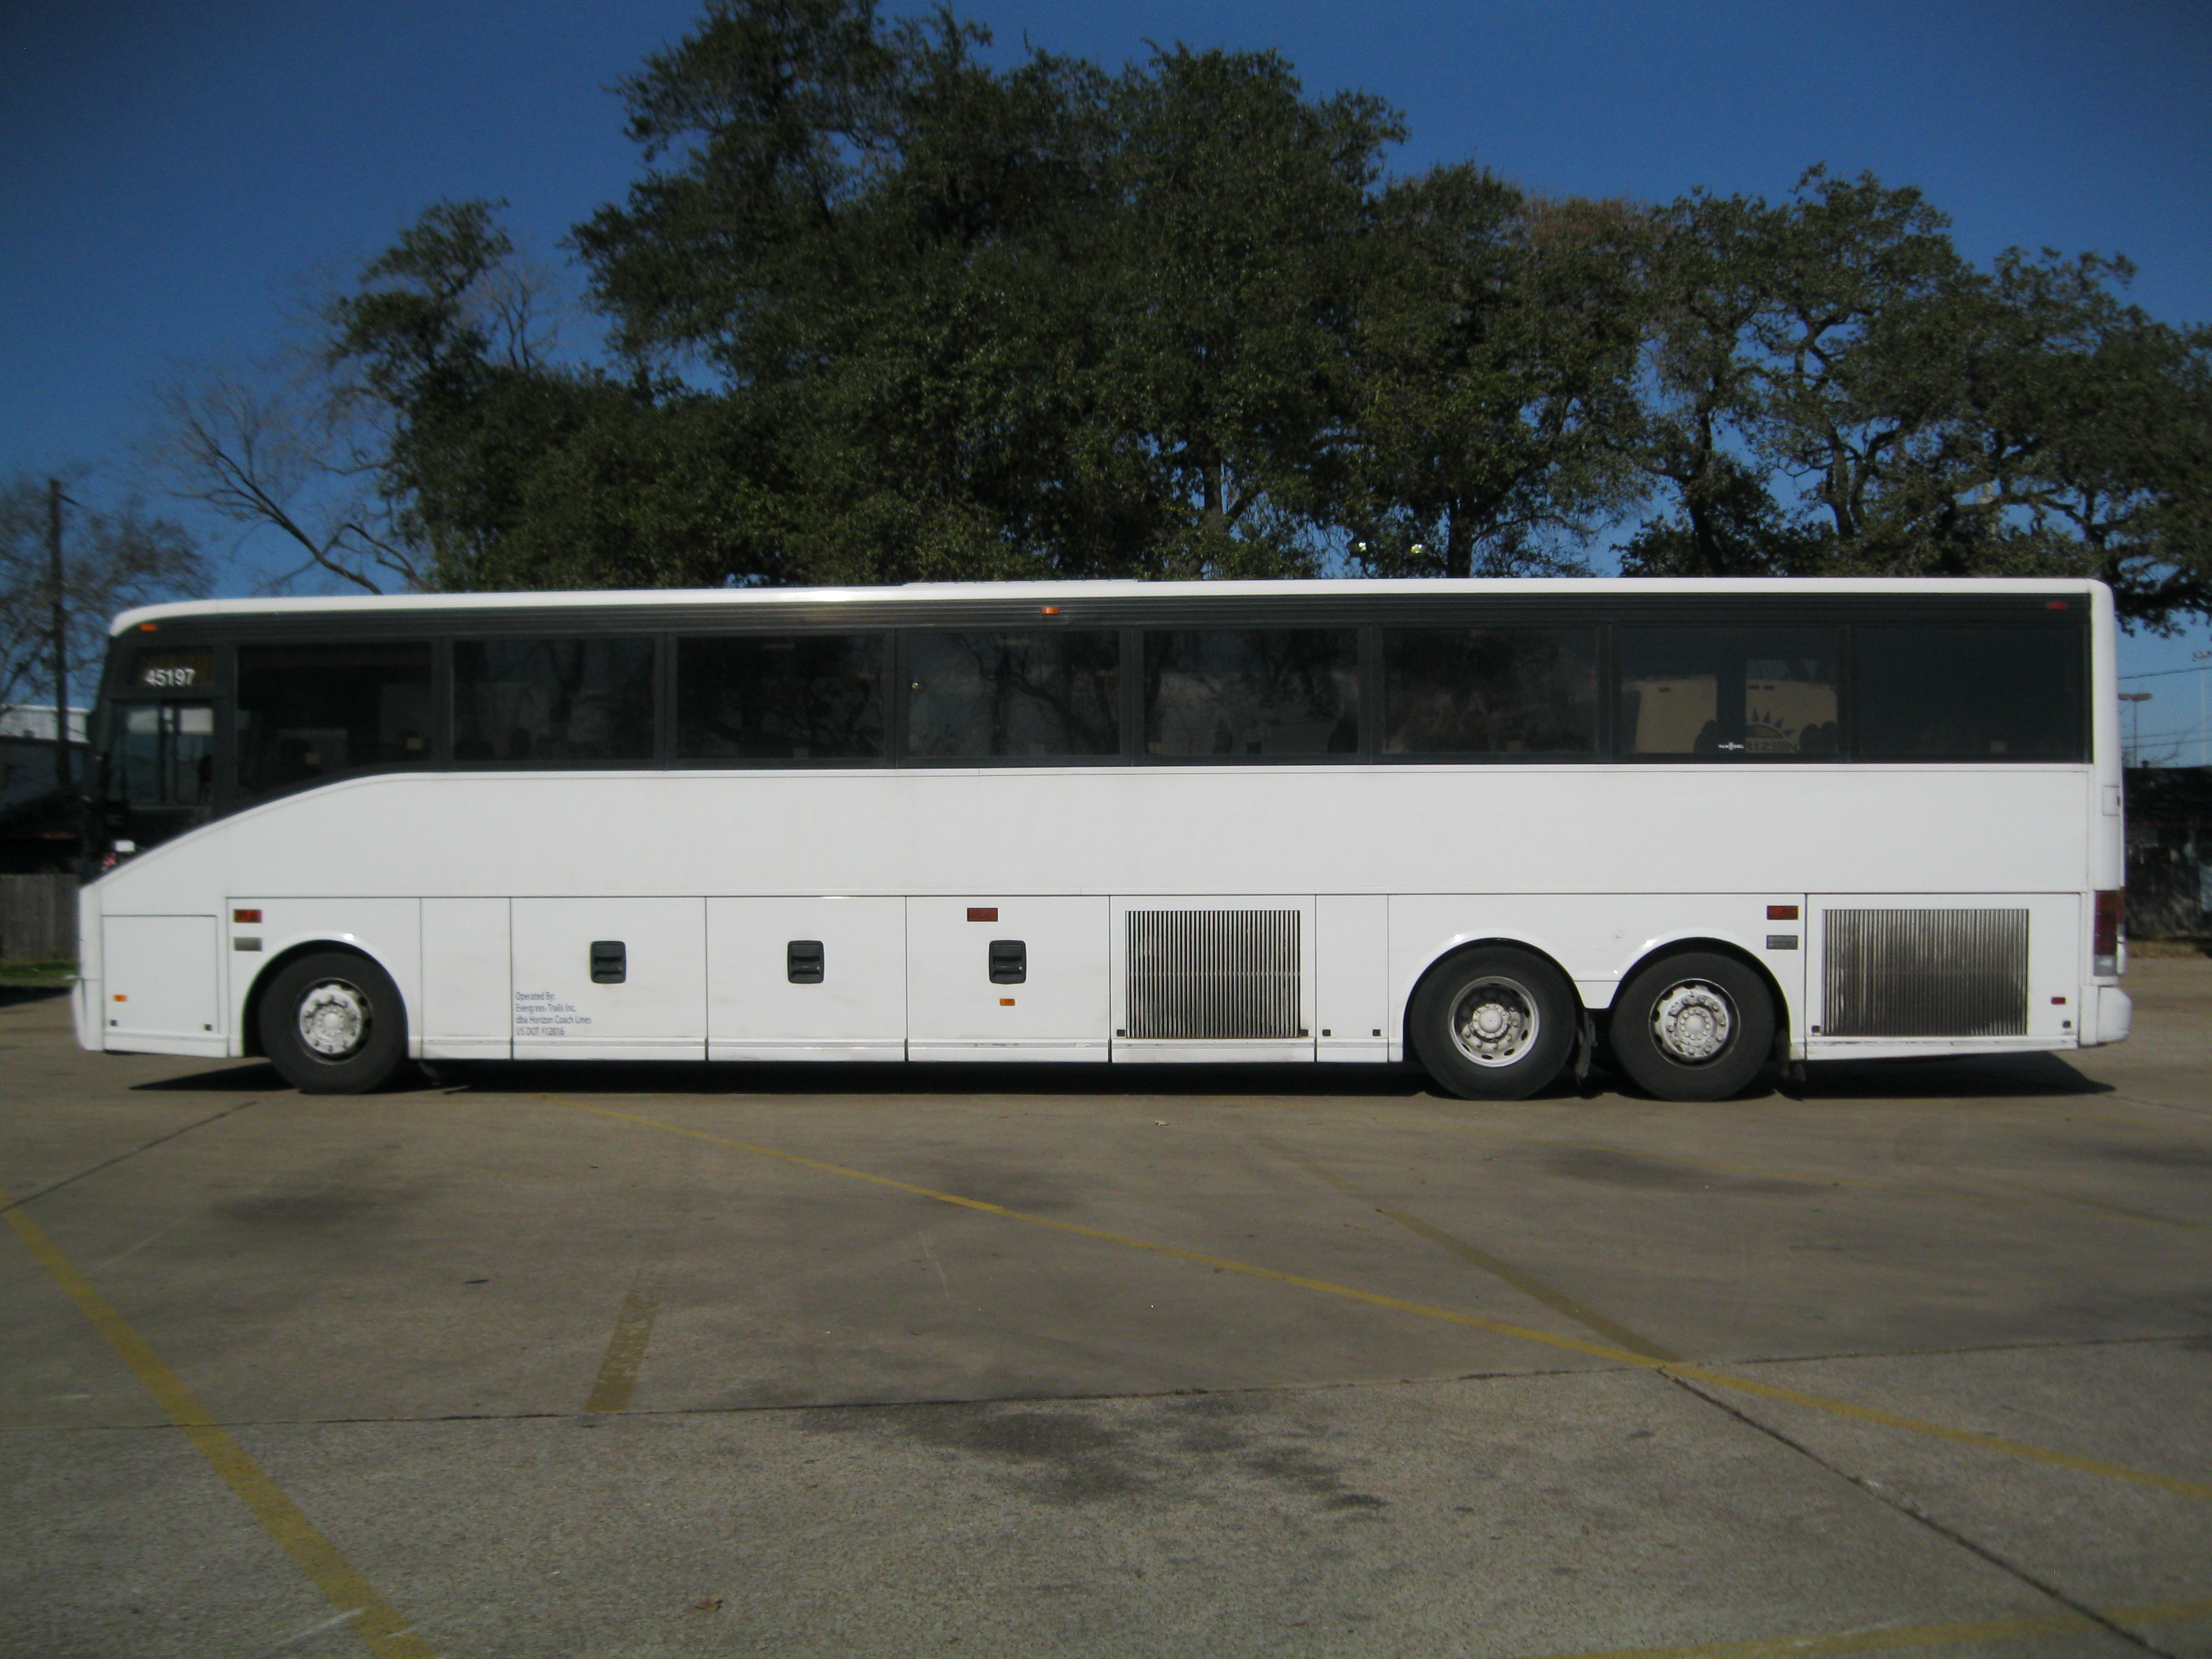 Van hool c2045 photo - 9